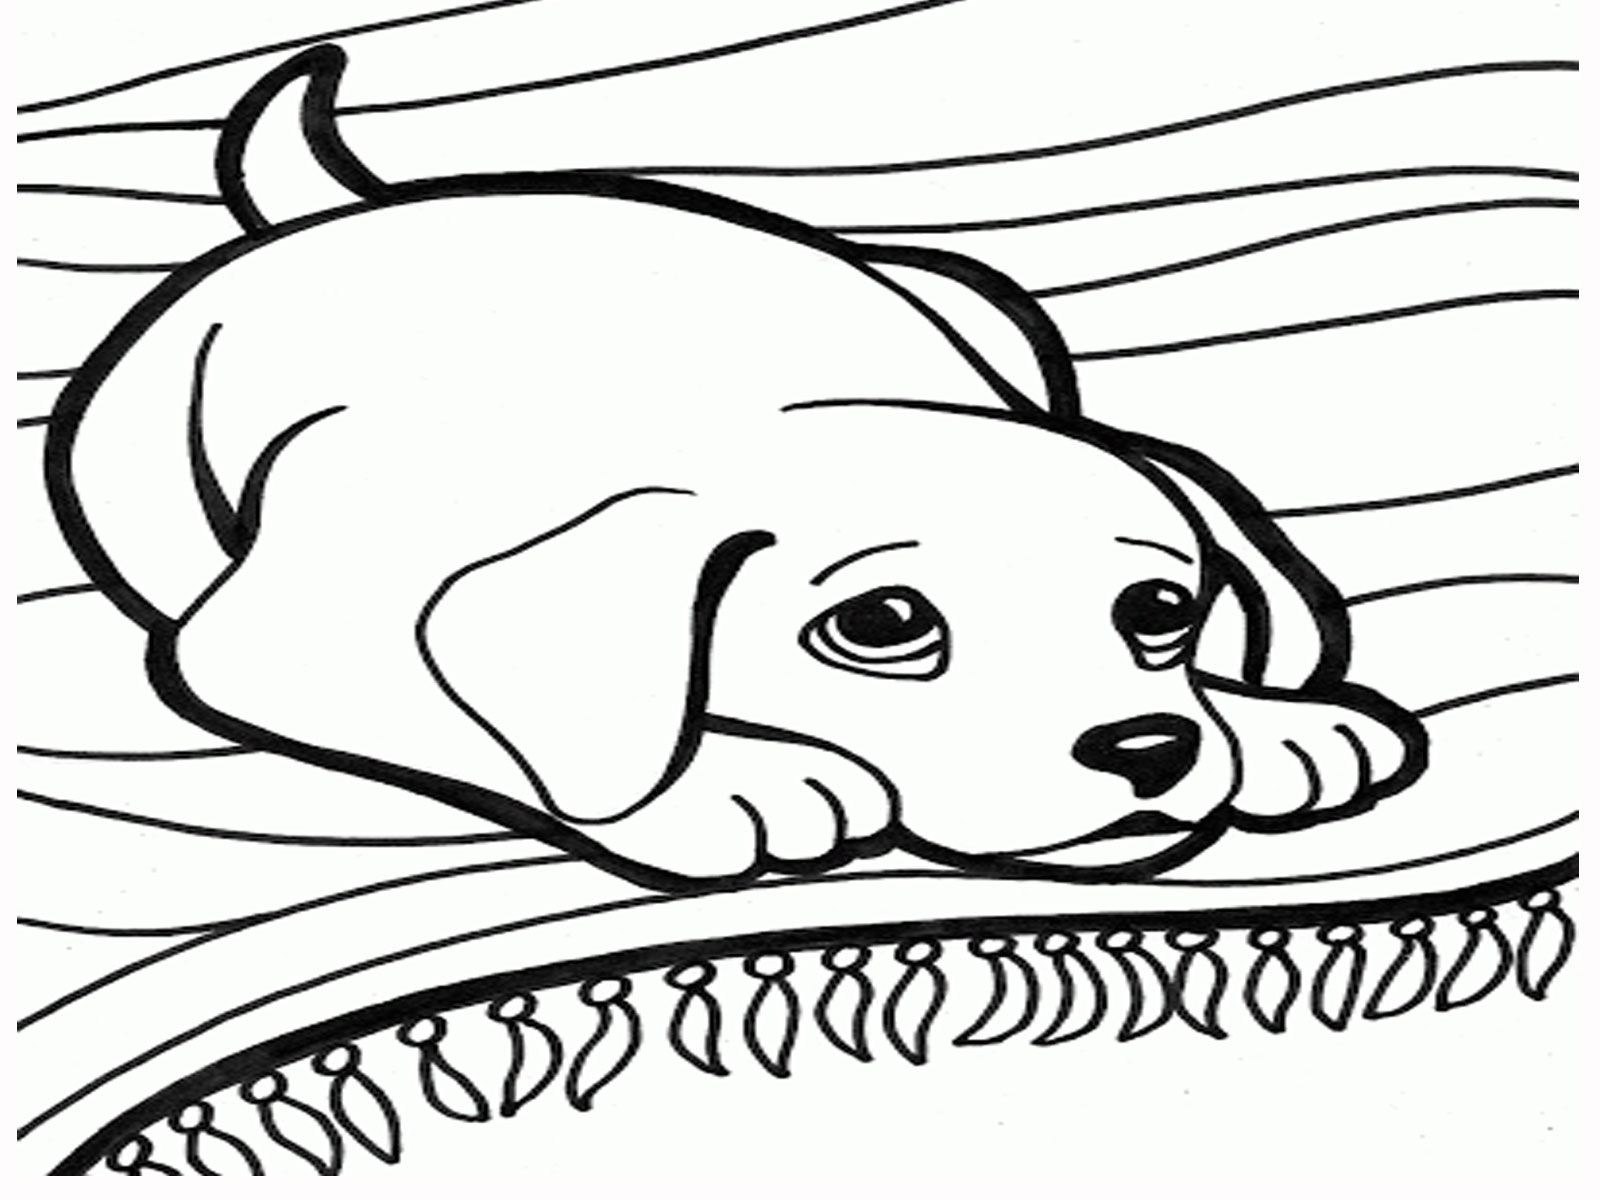 1600x1200 Funny Animals Coloring Page Cute Dog Coloring Pages Printable